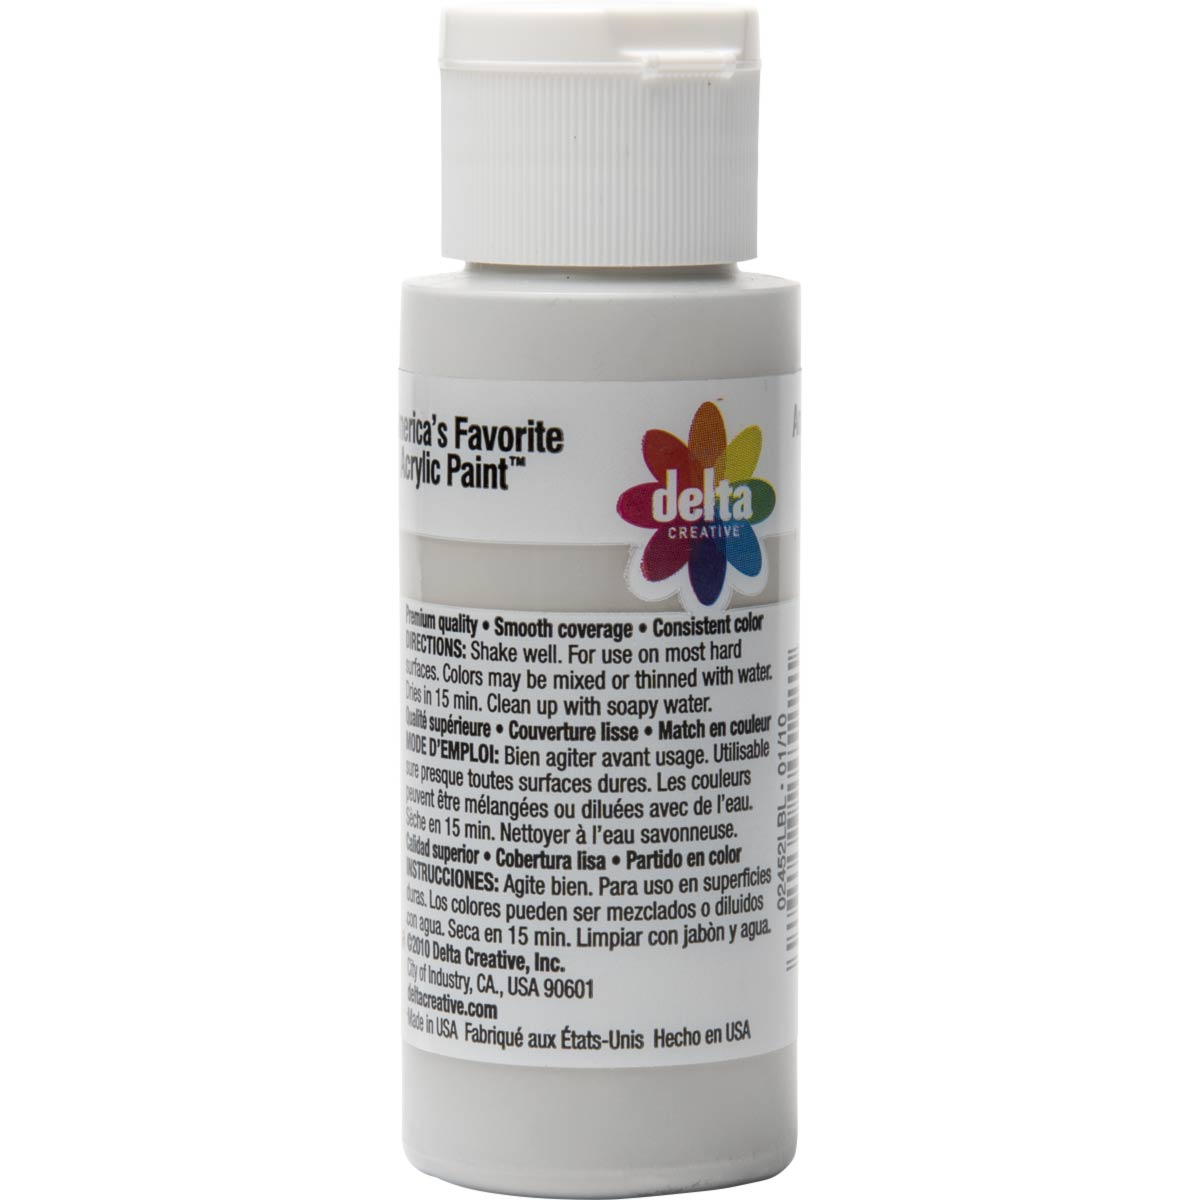 Delta Ceramcoat ® Acrylic Paint - Drizzle Grey, 2 oz. - 024520202W